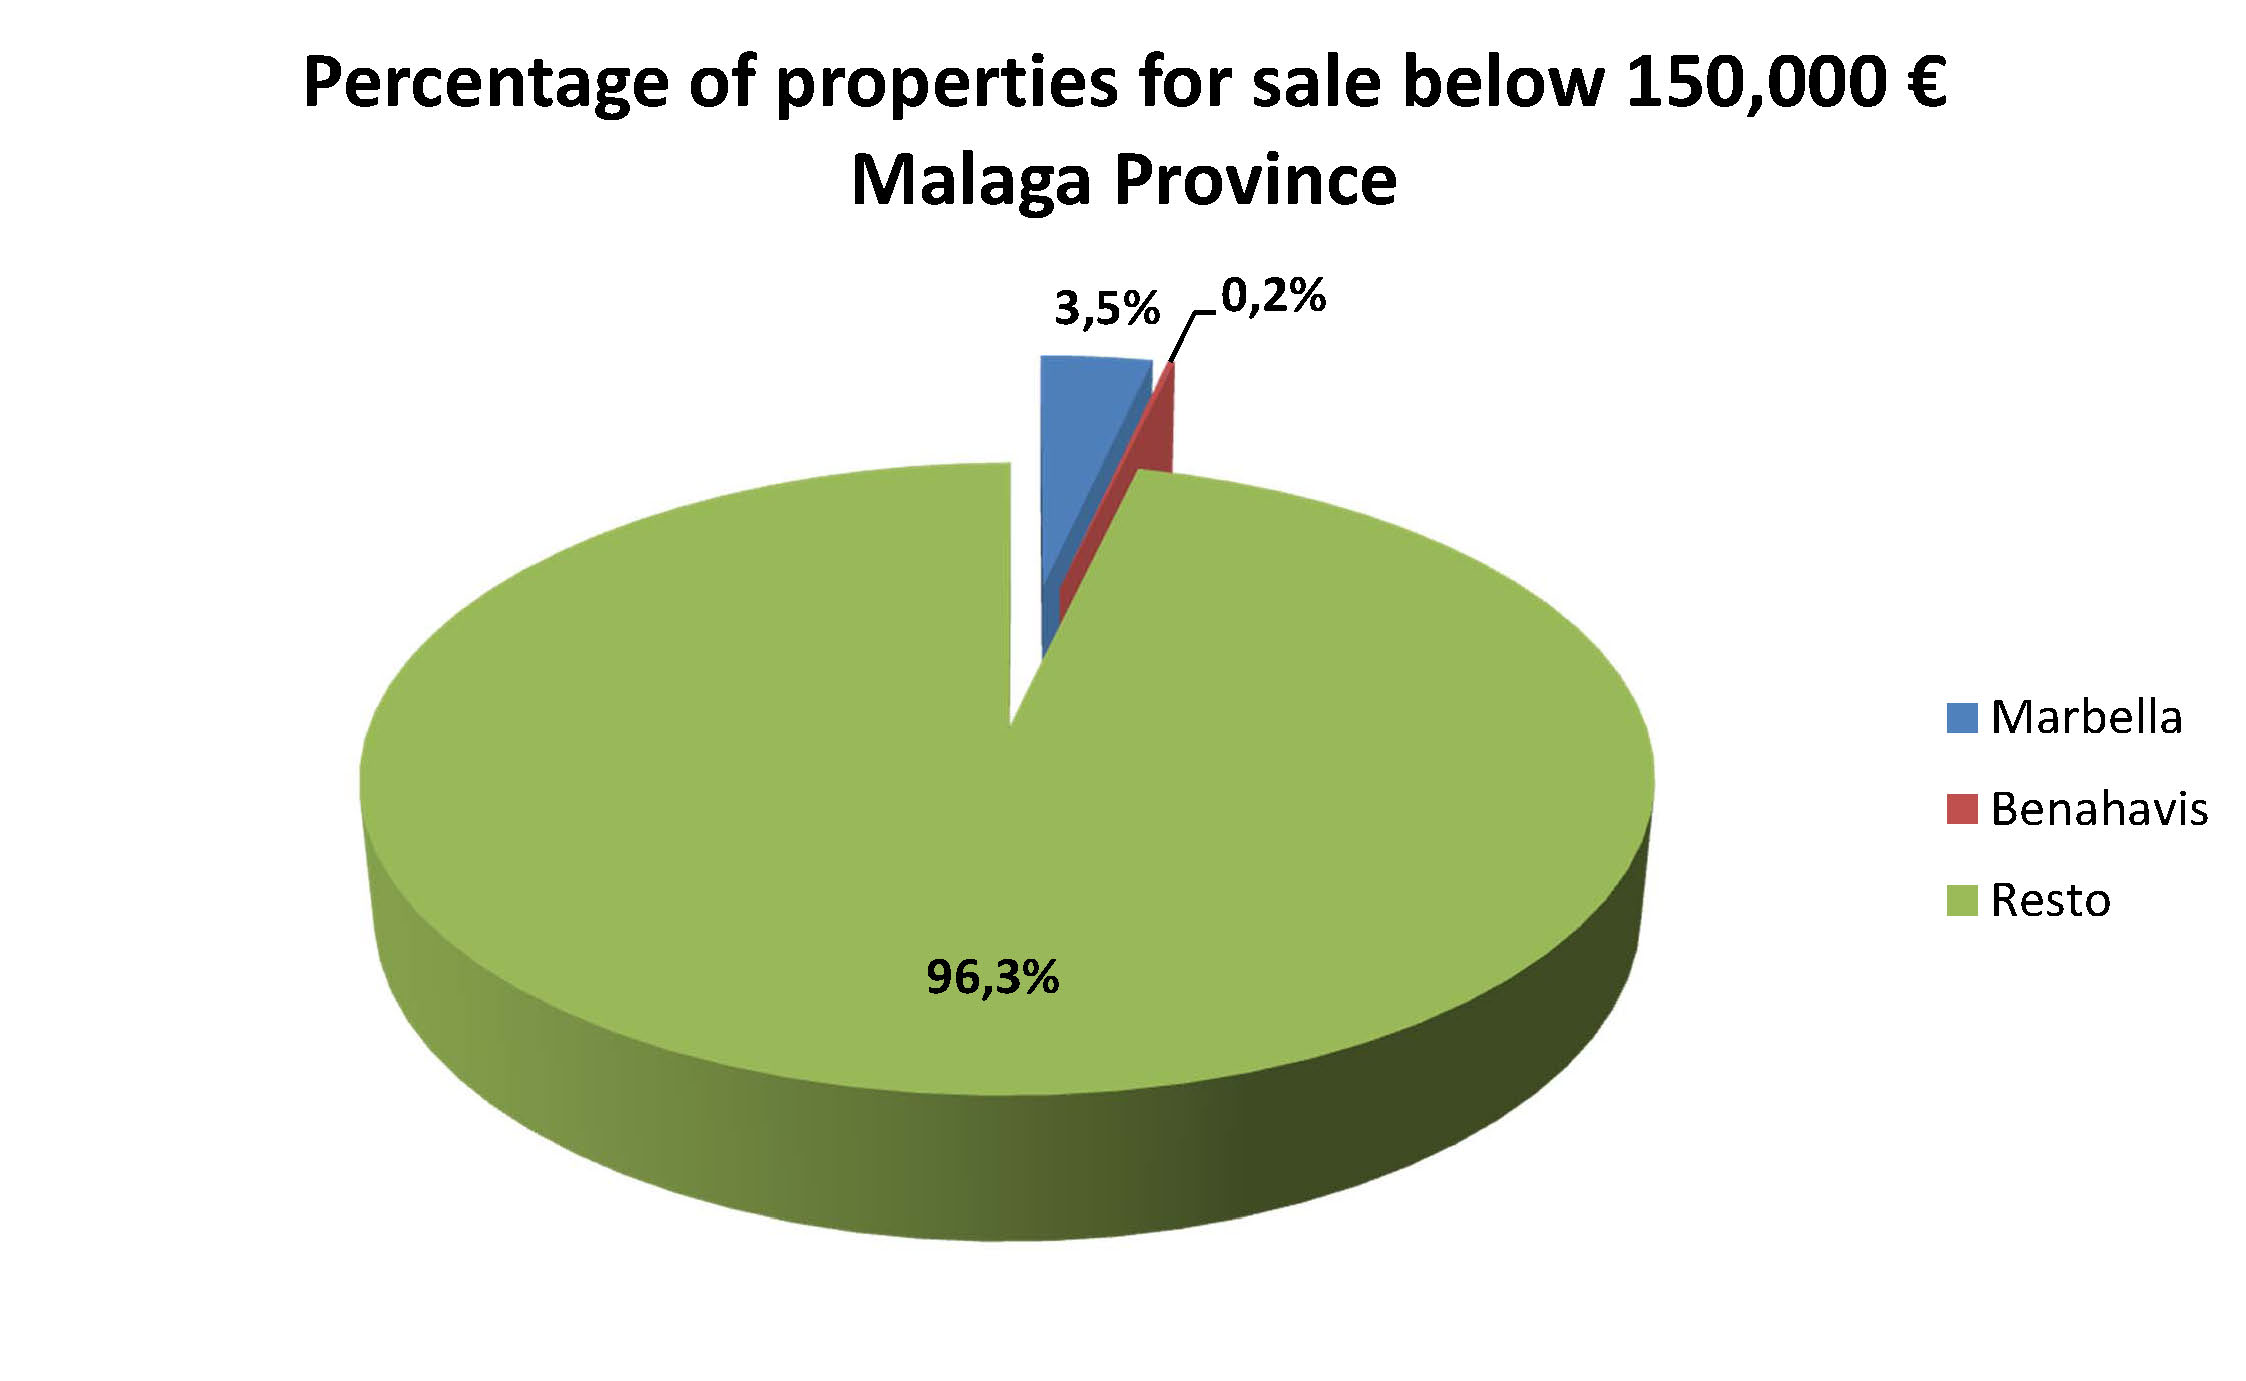 properties-for-sale-malaga-province-percentage-150000